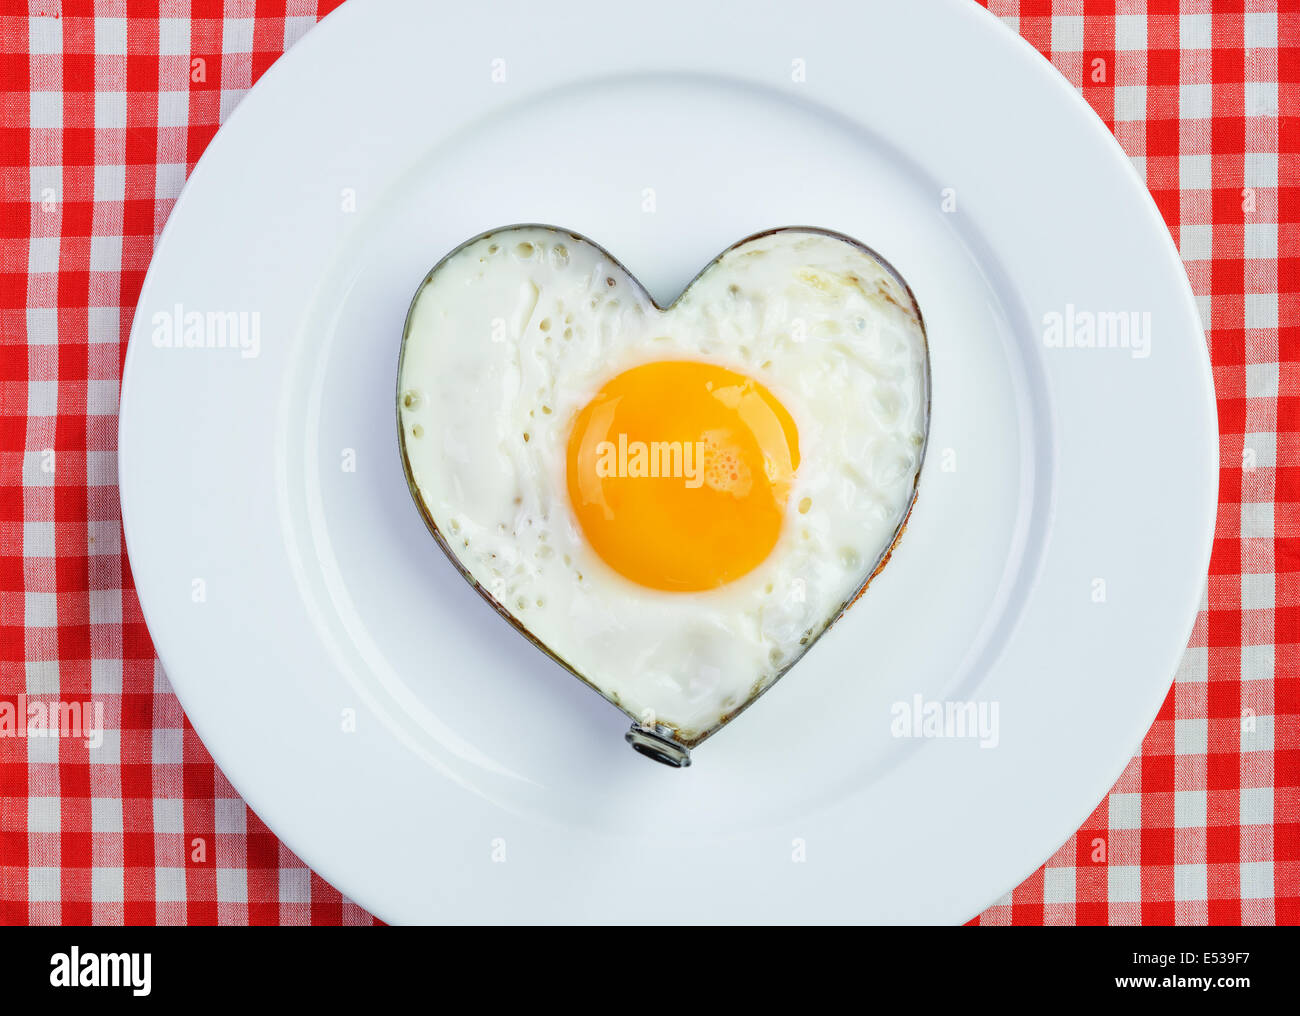 Fried egg  in heart shape on vintage tablecloth. Breakfast for a loved one - Stock Image